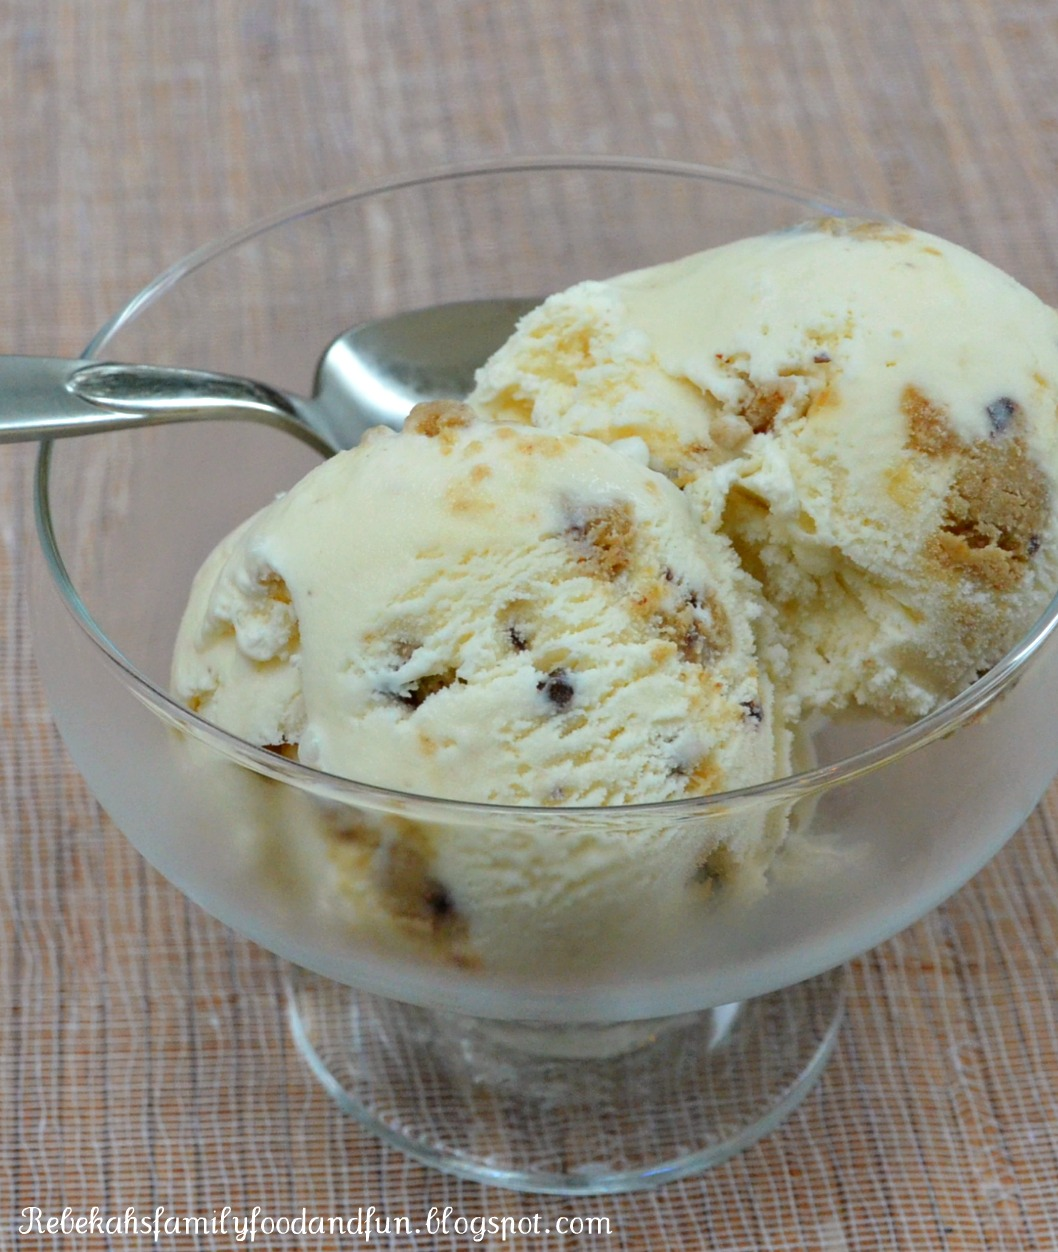 Family, Food, and Fun: Chocolate Chip Cookie Dough Ice Cream